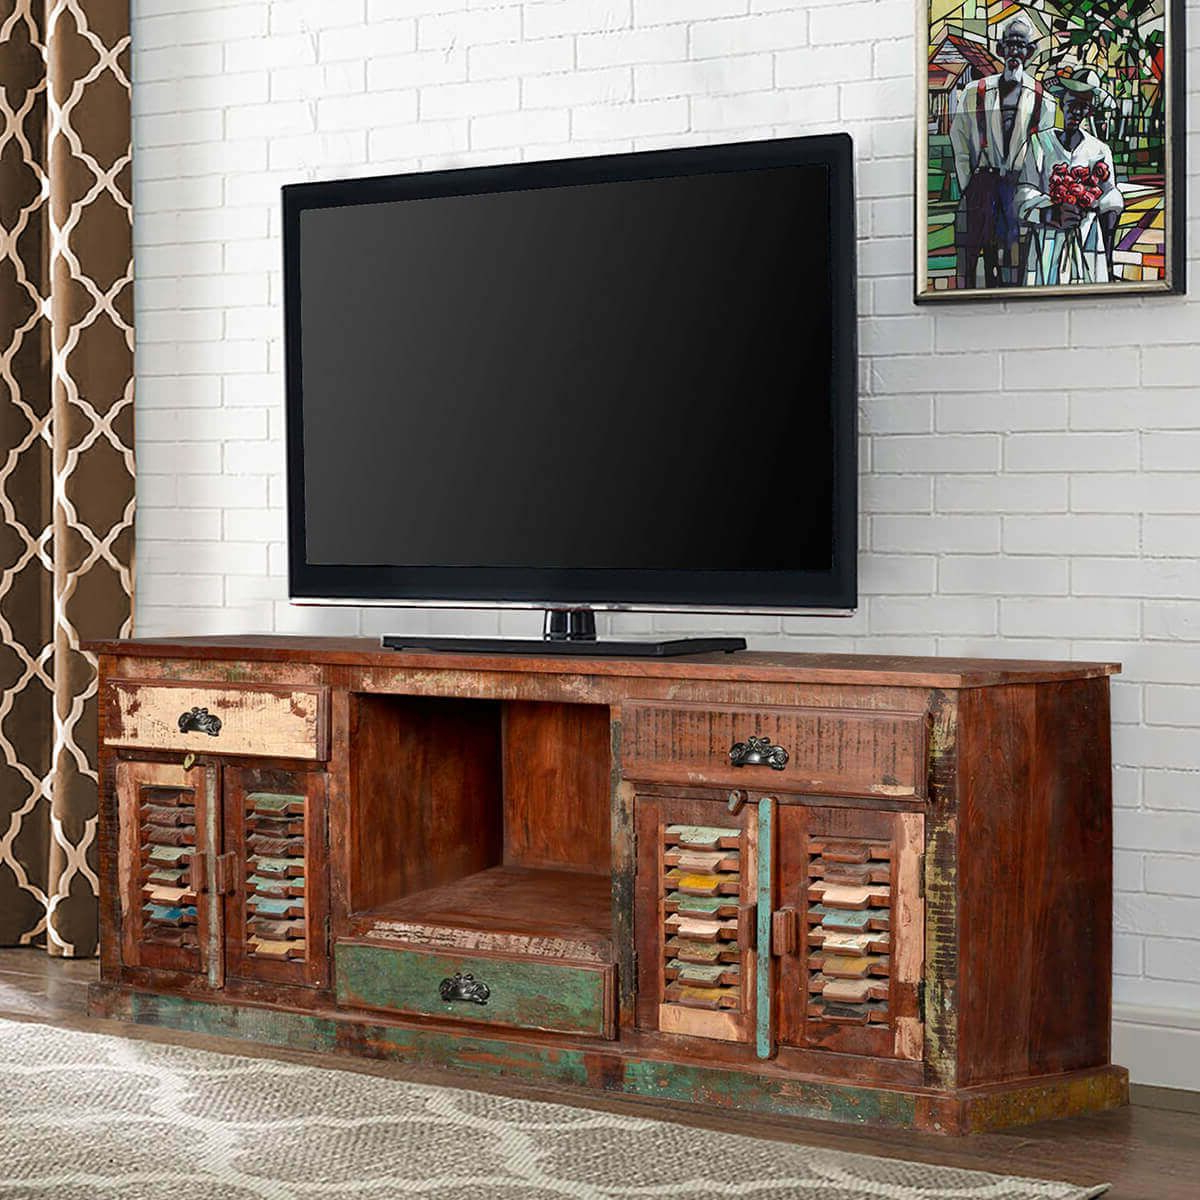 Rustic Reclaimed Wood Large Tv Stand Media Console Regarding Favorite Modern Tv Stands In Oak Wood And Black Accents With Storage Doors (View 10 of 10)